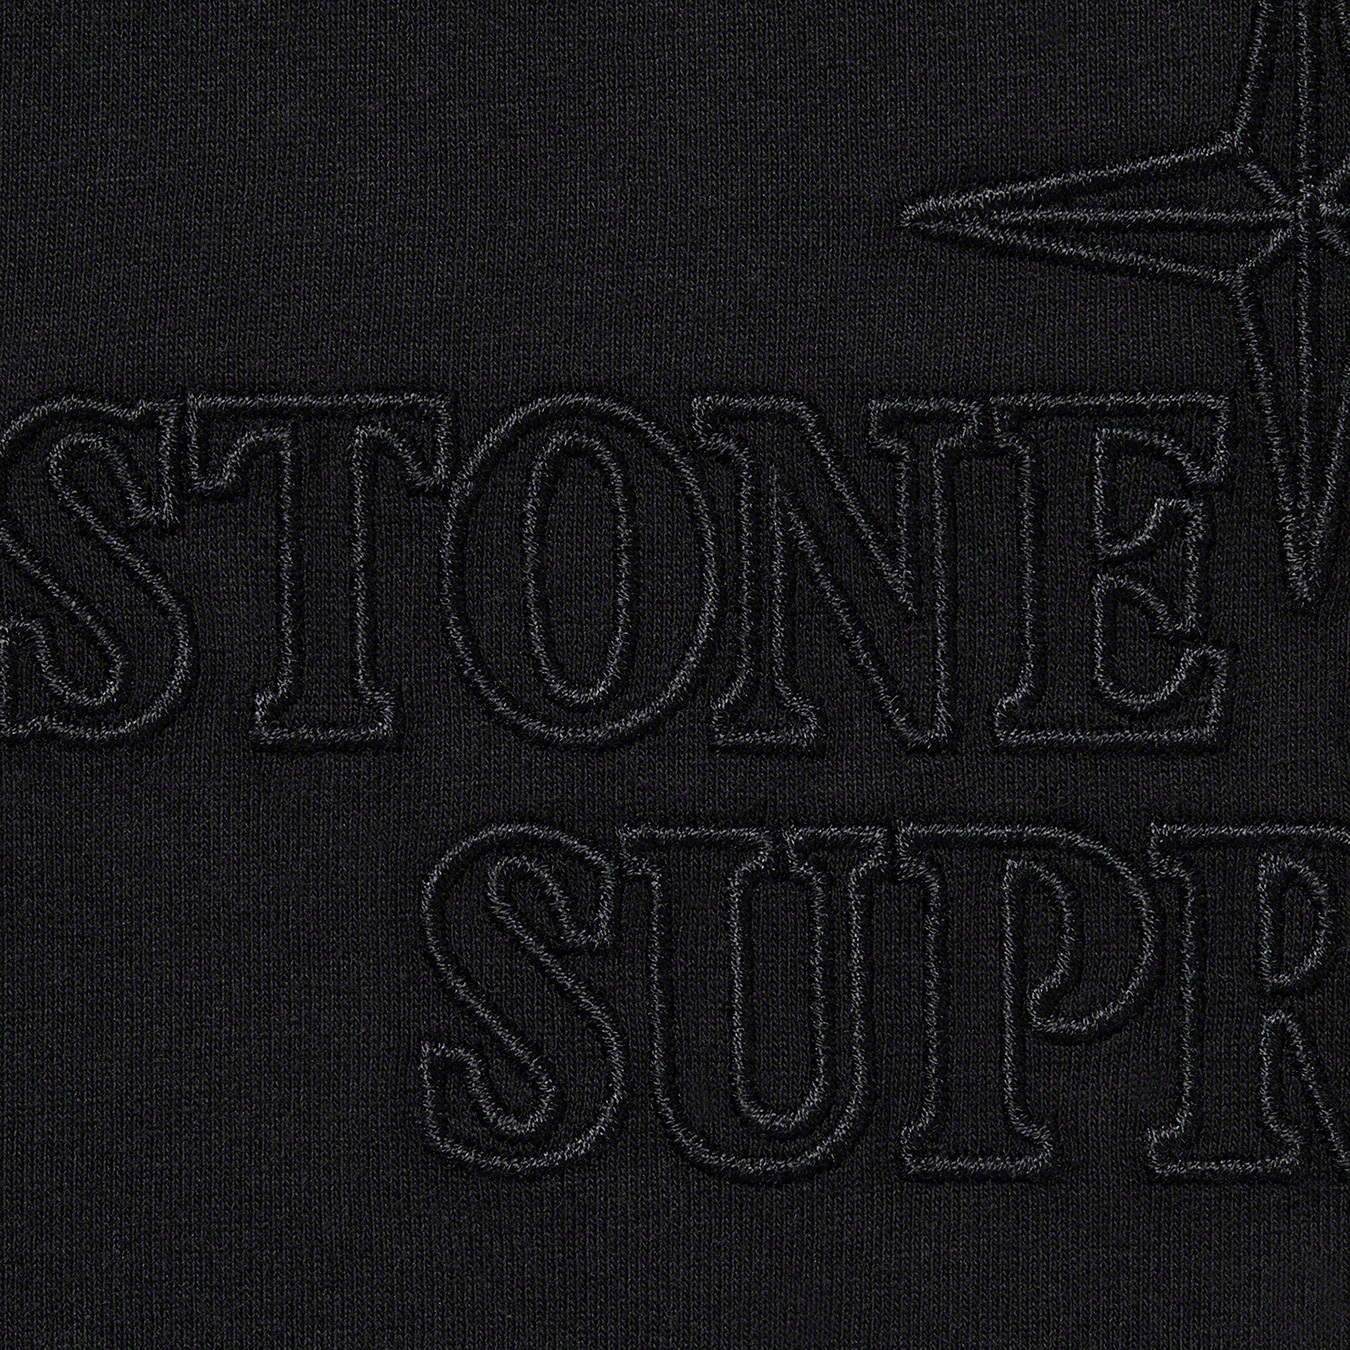 supreme-stone-island-20aw-20fw-embroidered-logo-s-s-top